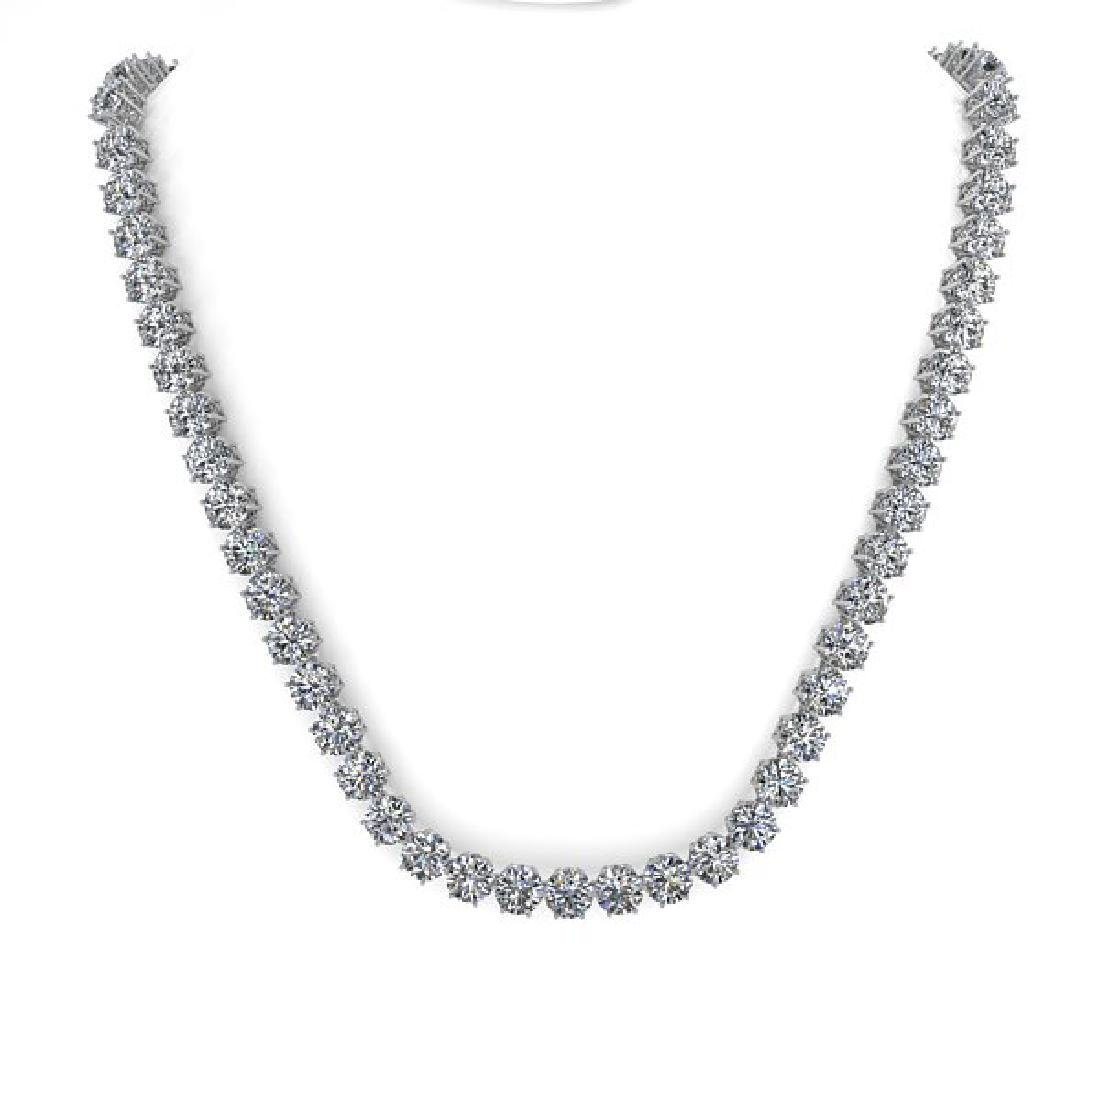 29 CTW SI Certified Diamond Necklace 18K White Gold - 3